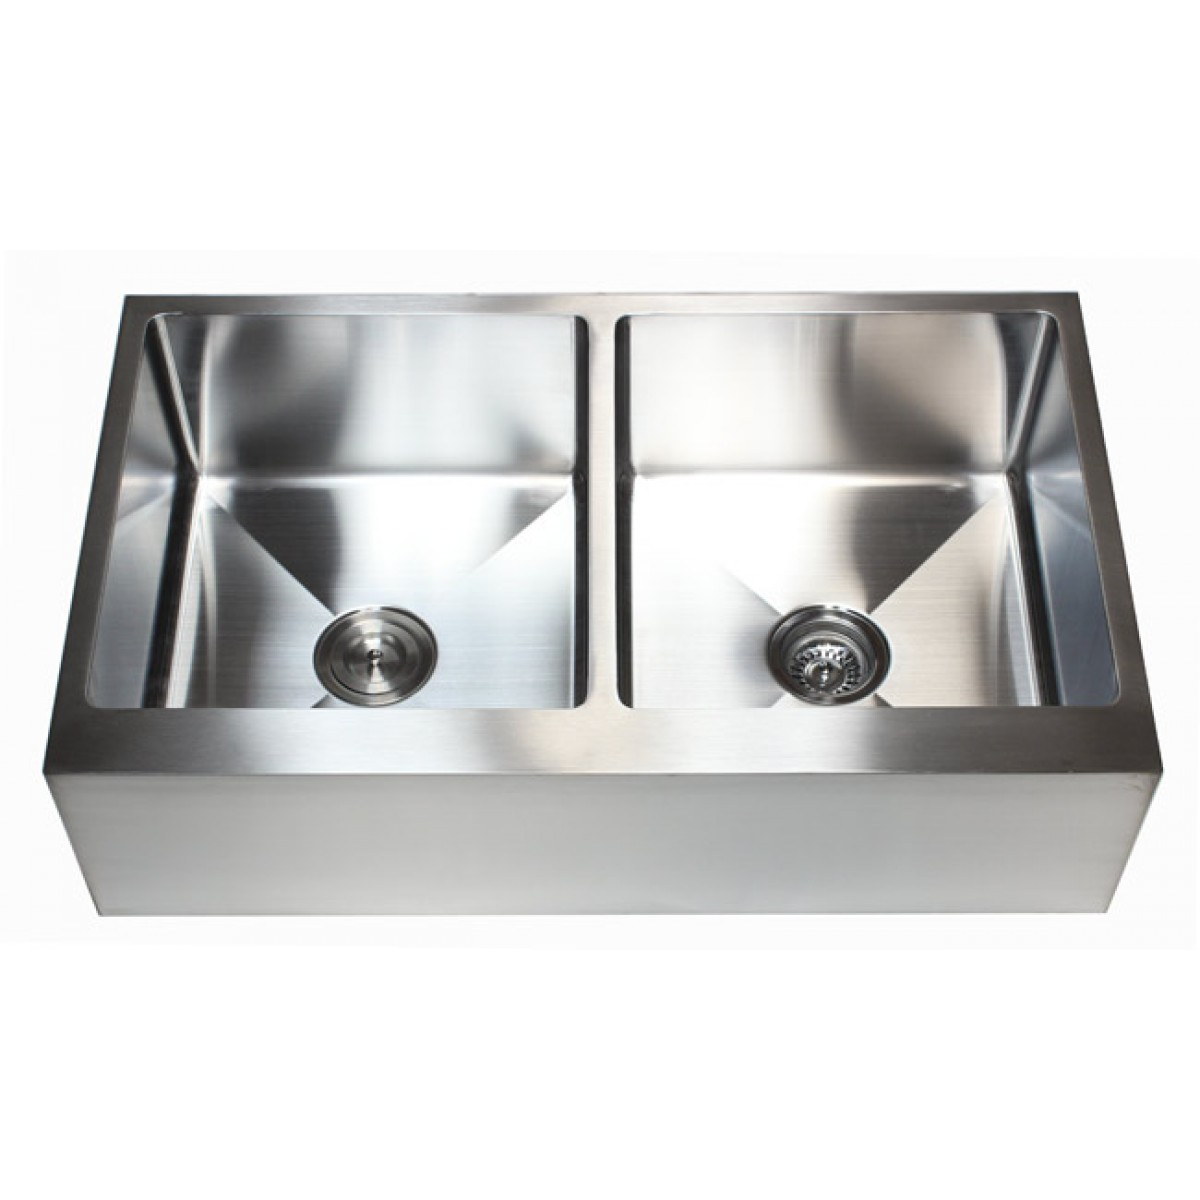 double kitchen sink pantry cabinet ikea 36 inch stainless steel flat front farm apron 50